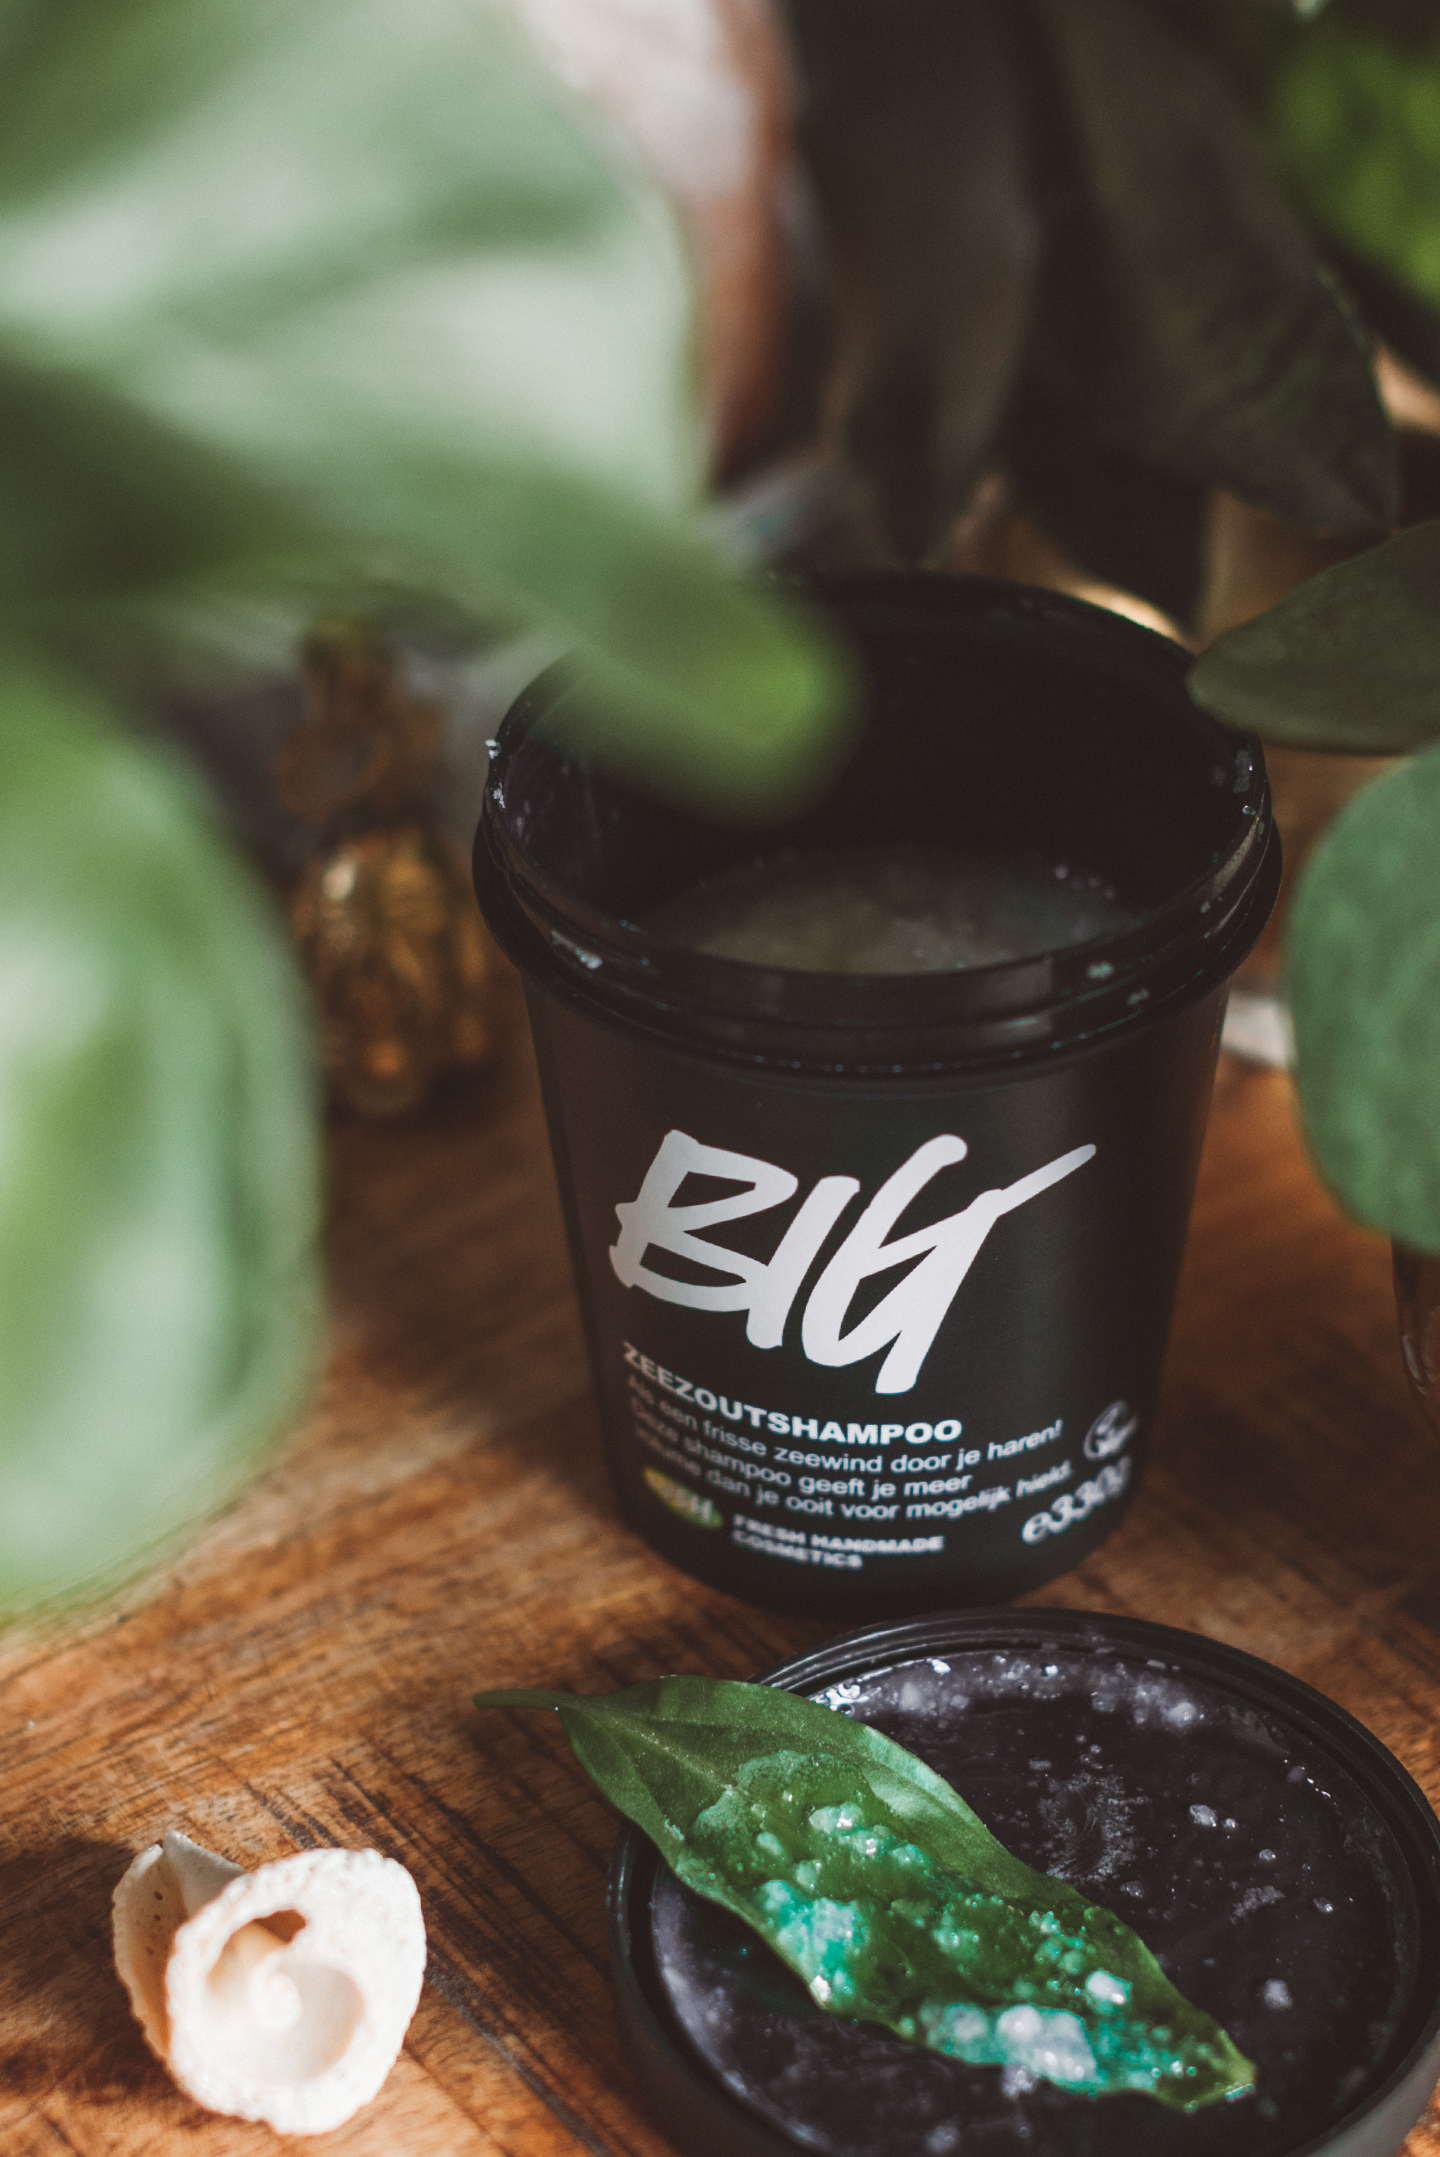 Lush vegan Haircare BIG shampoo